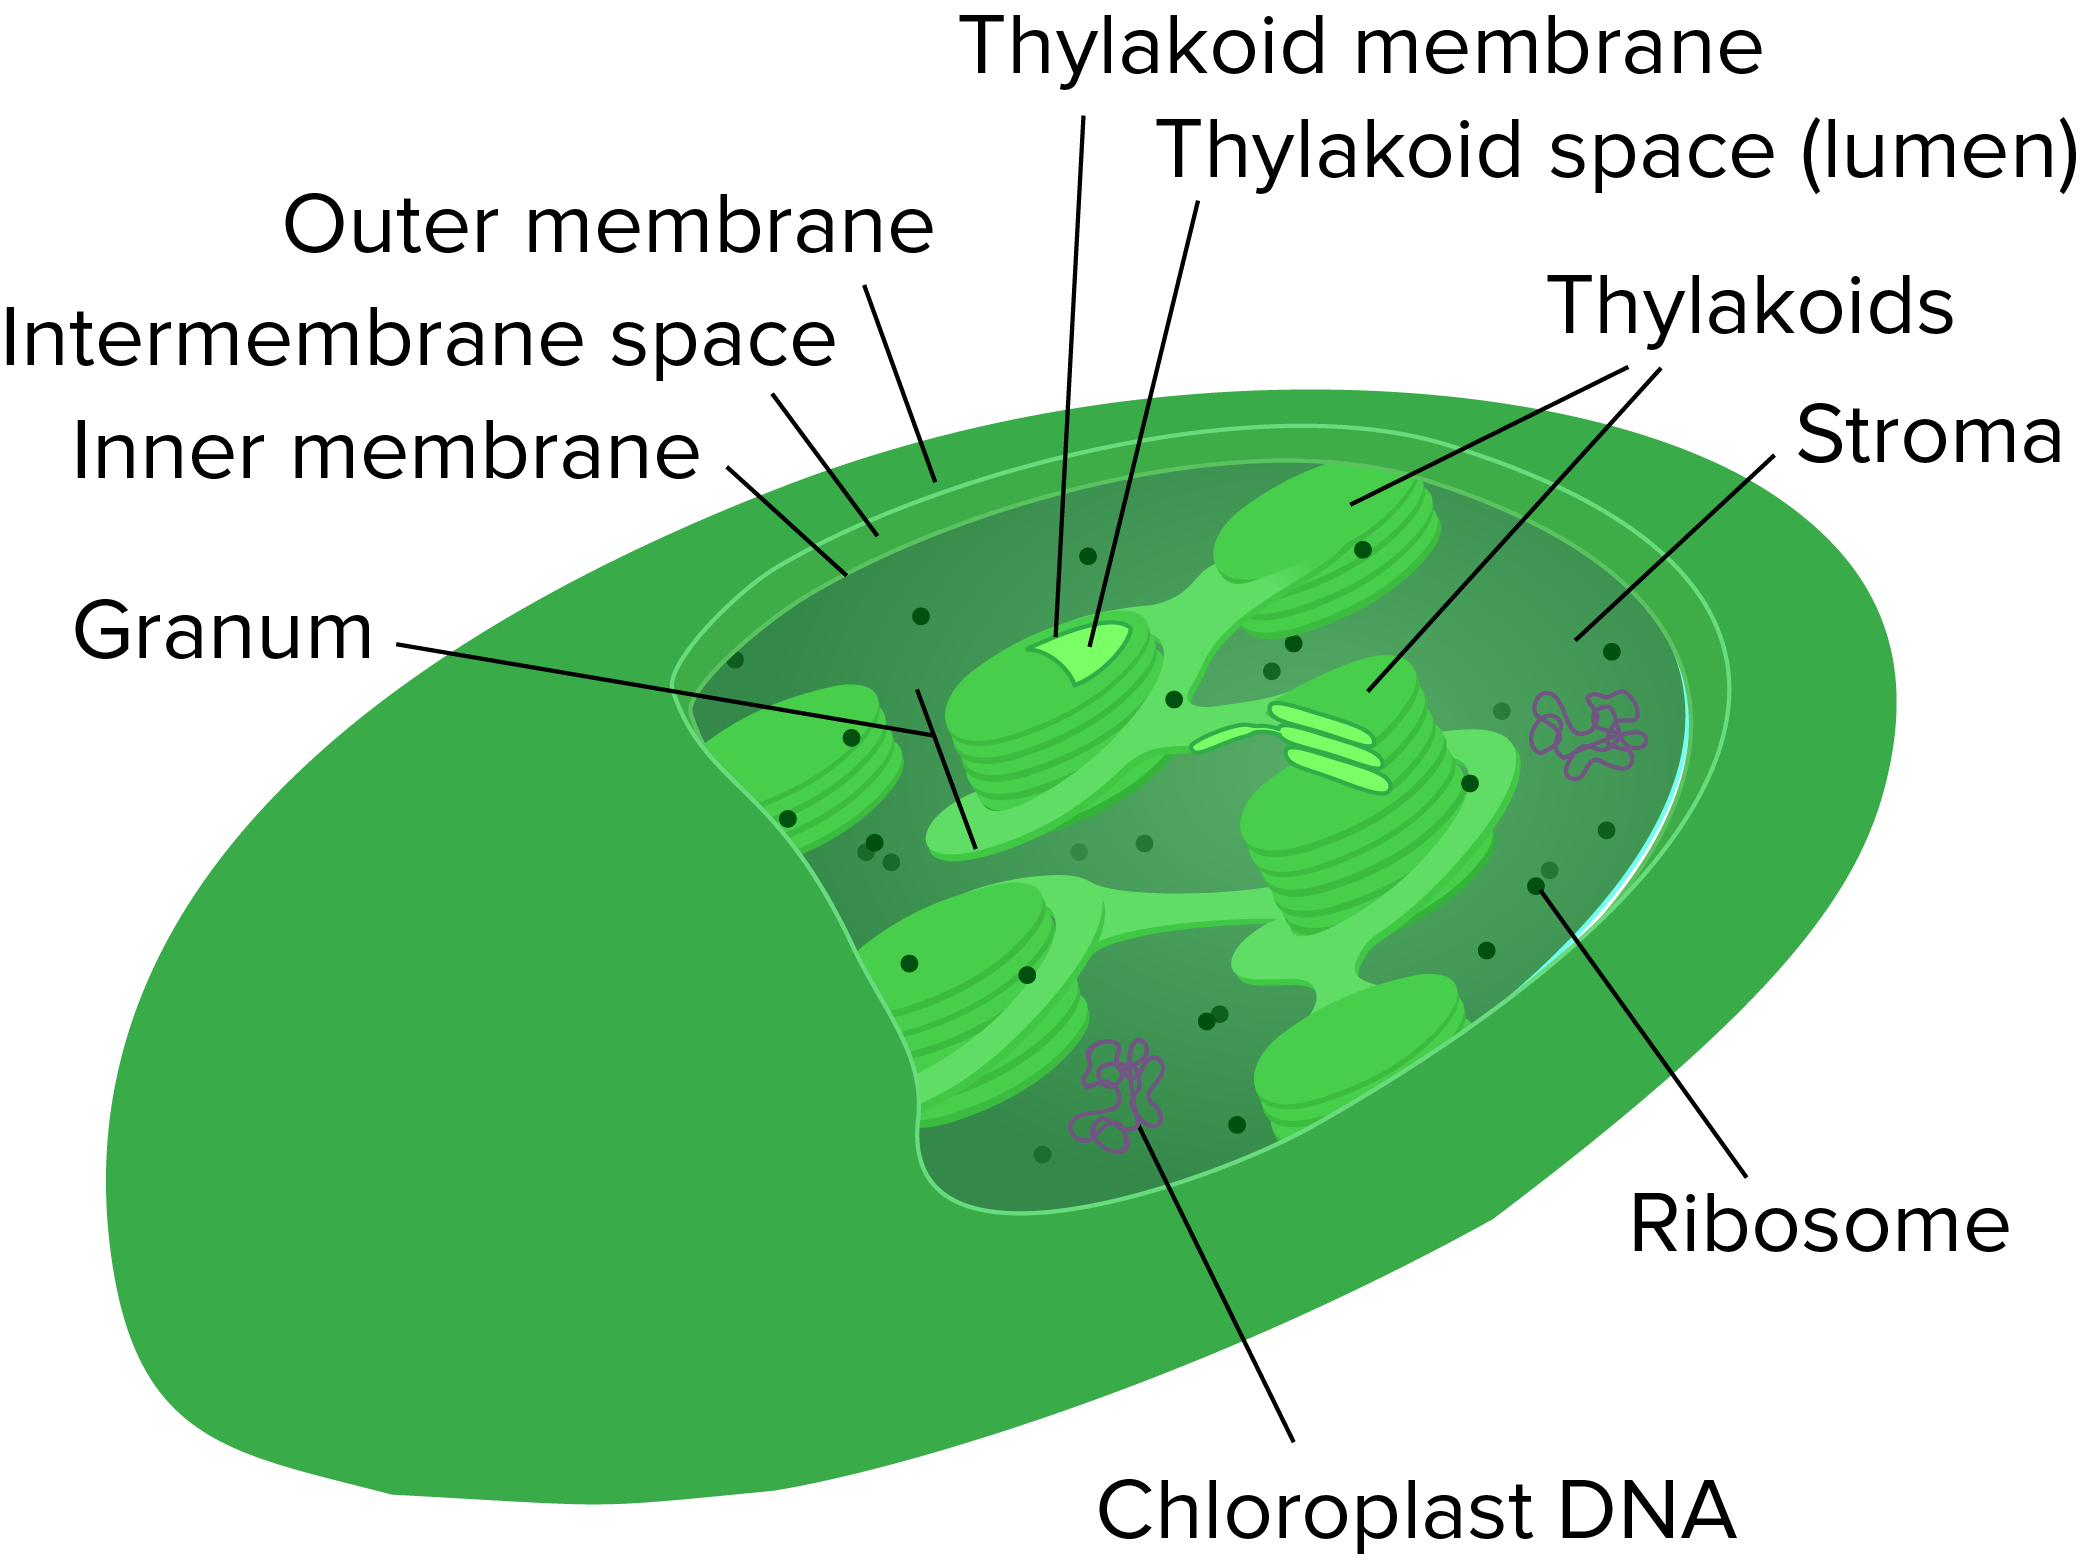 Mitochondria Chloroplasts And Peroxisomes